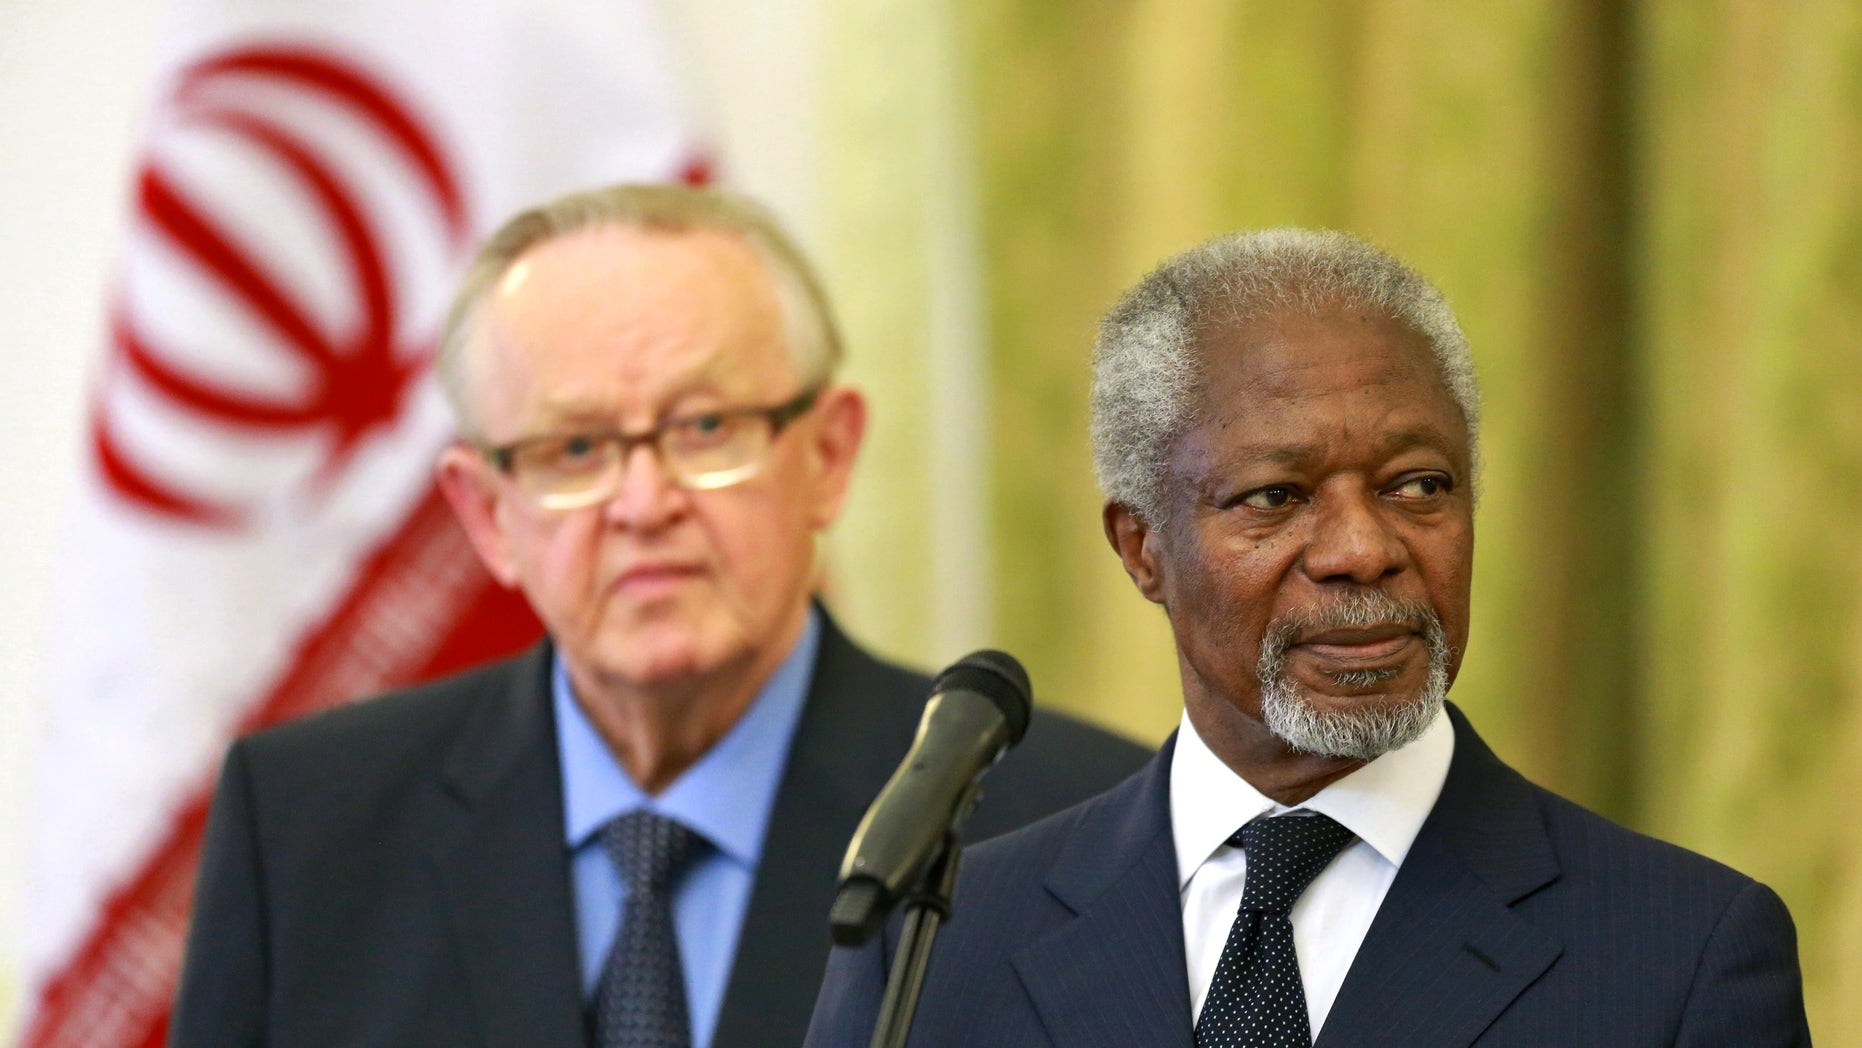 "Kofi Annan, former U.N. secretary general, right, reads a statement at the conclusion of his meeting with Iran's Foreign Minister Mohammad Javad Zarif  in Tehran, Iran, Monday, Jan. 27, 2014, as Martti Ahtisaari, pormer president of Finland, left, listens. The former head of the United Nations urged Iran Monday to build on a historic deal reached with world powers in November and work toward a final settlement over its contested nuclear program. Annan, who is heading a group of ex-world leaders known as ""The Elders,"" made the comments after a meeting with Iran's Foreign Minister Mohammad Javad Zarif Monday. (AP Photo/Ebrahim Noroozi)"